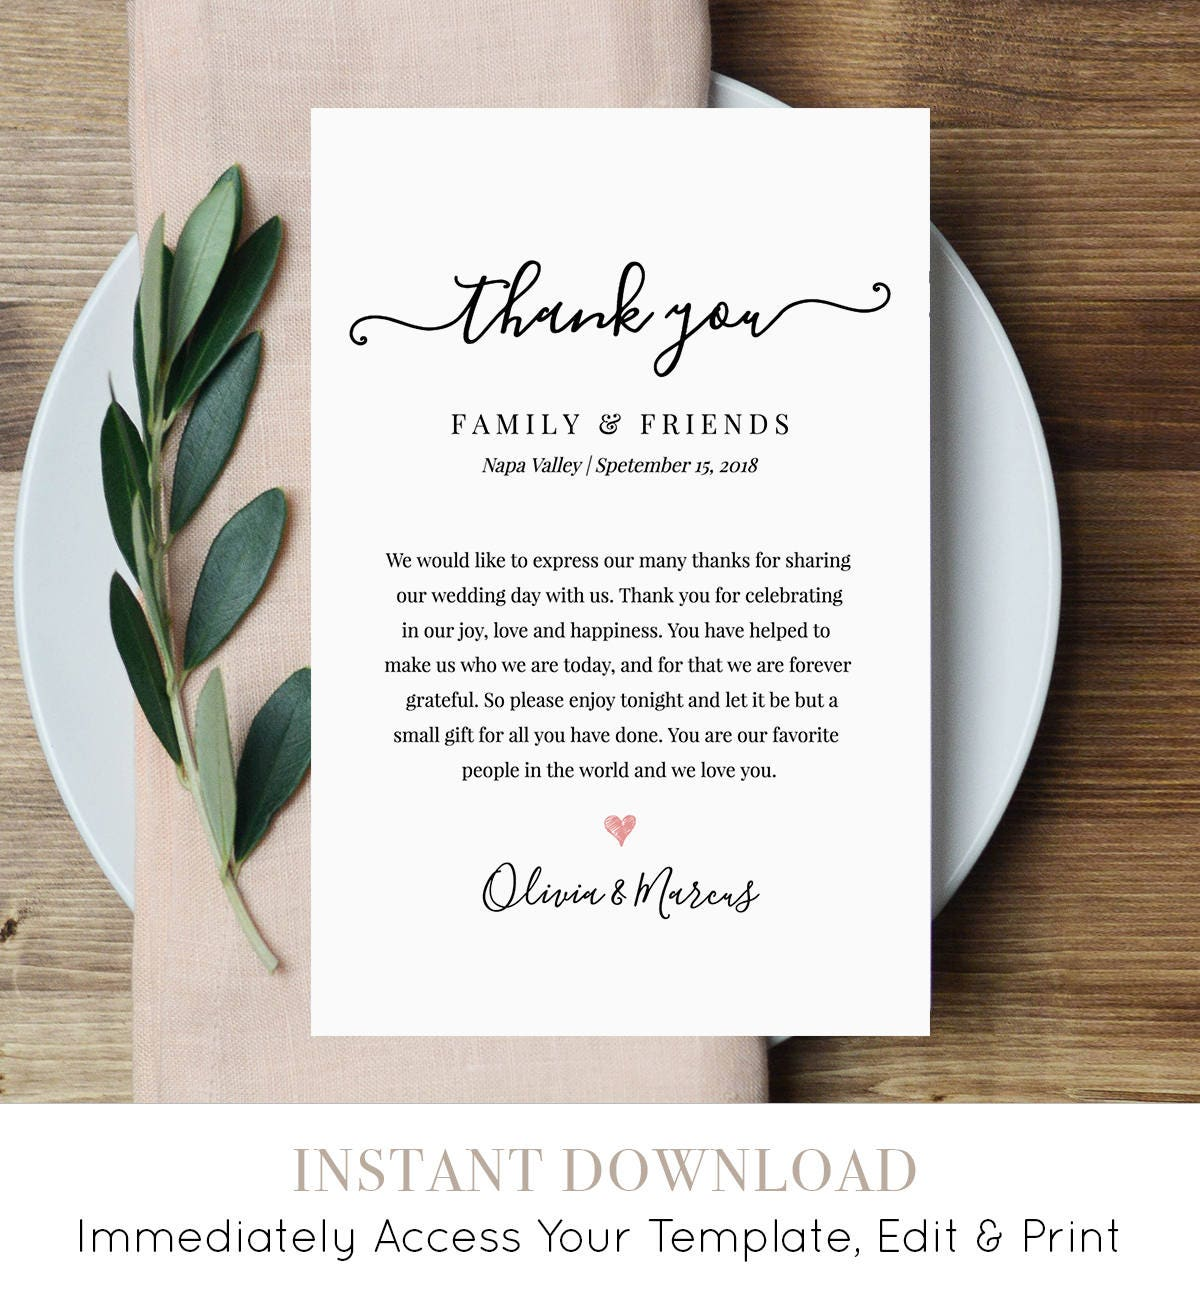 wedding thank you letter thank you note printable wedding in. Black Bedroom Furniture Sets. Home Design Ideas